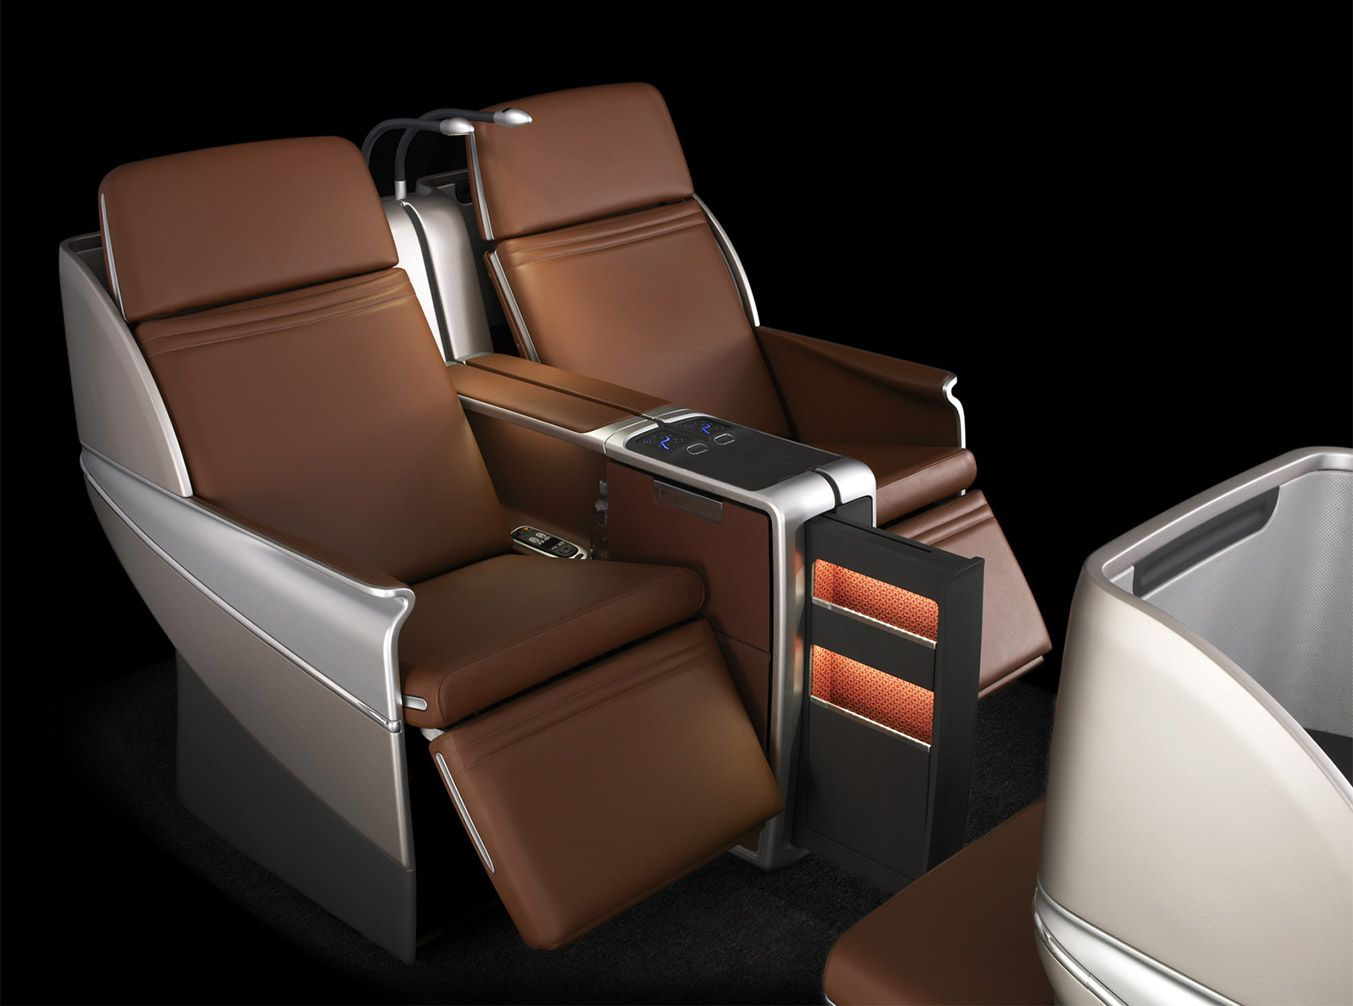 The 'Aura' business class seat is one of Boeing's most